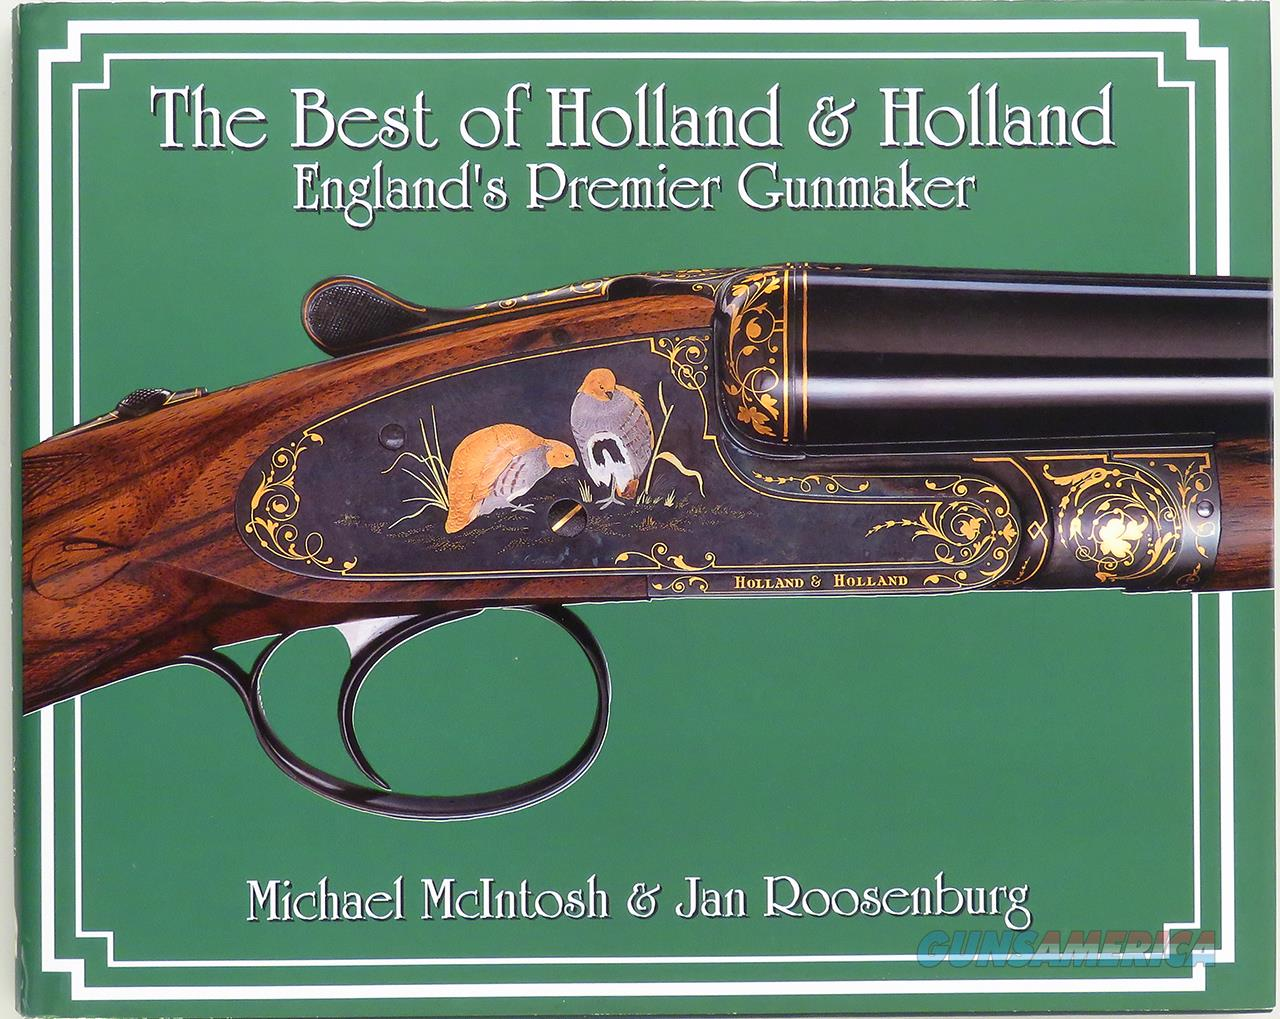 The Best of Holland & Holland, McIntosh and Roosenburg, 2004, pristine  Non-Guns > Books & Magazines